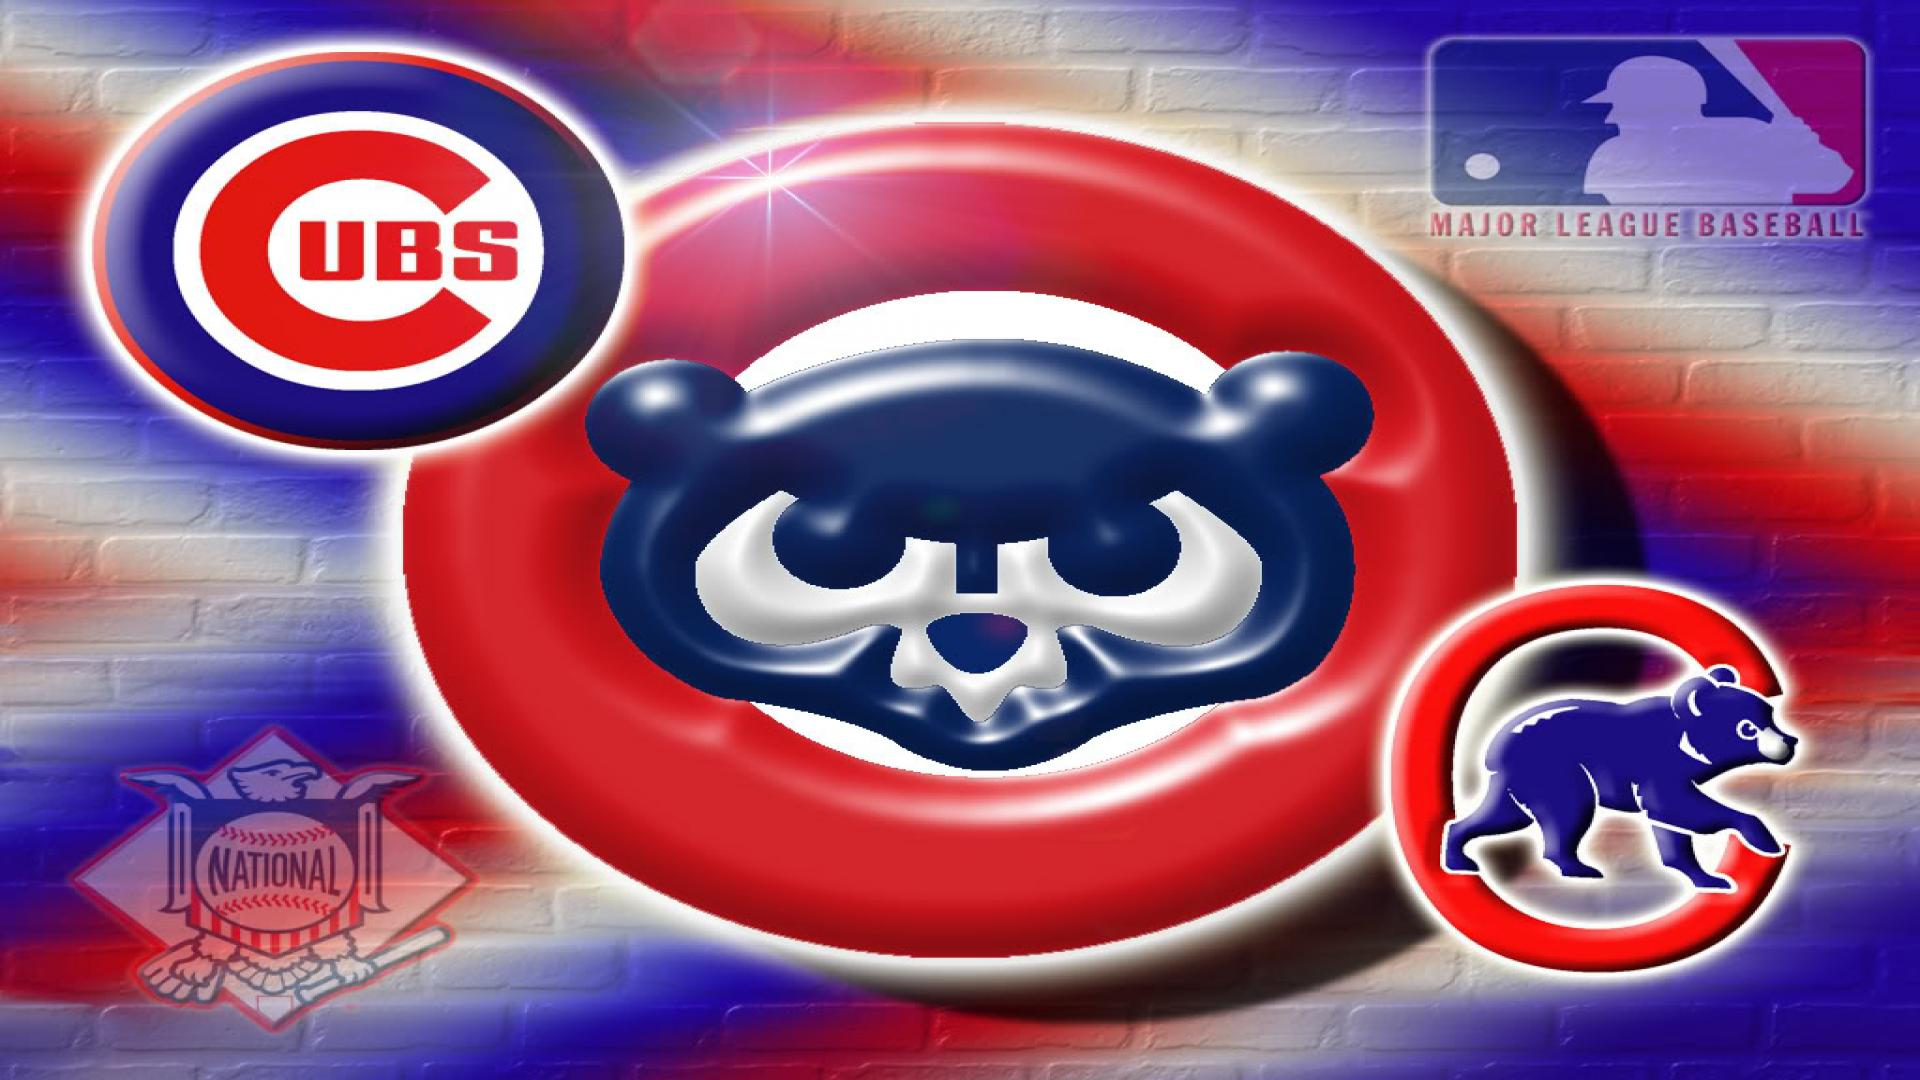 Chicago-Cubs-CHICAGO-CUBS-mlb-baseball-background-wallpaper-wpc5803428